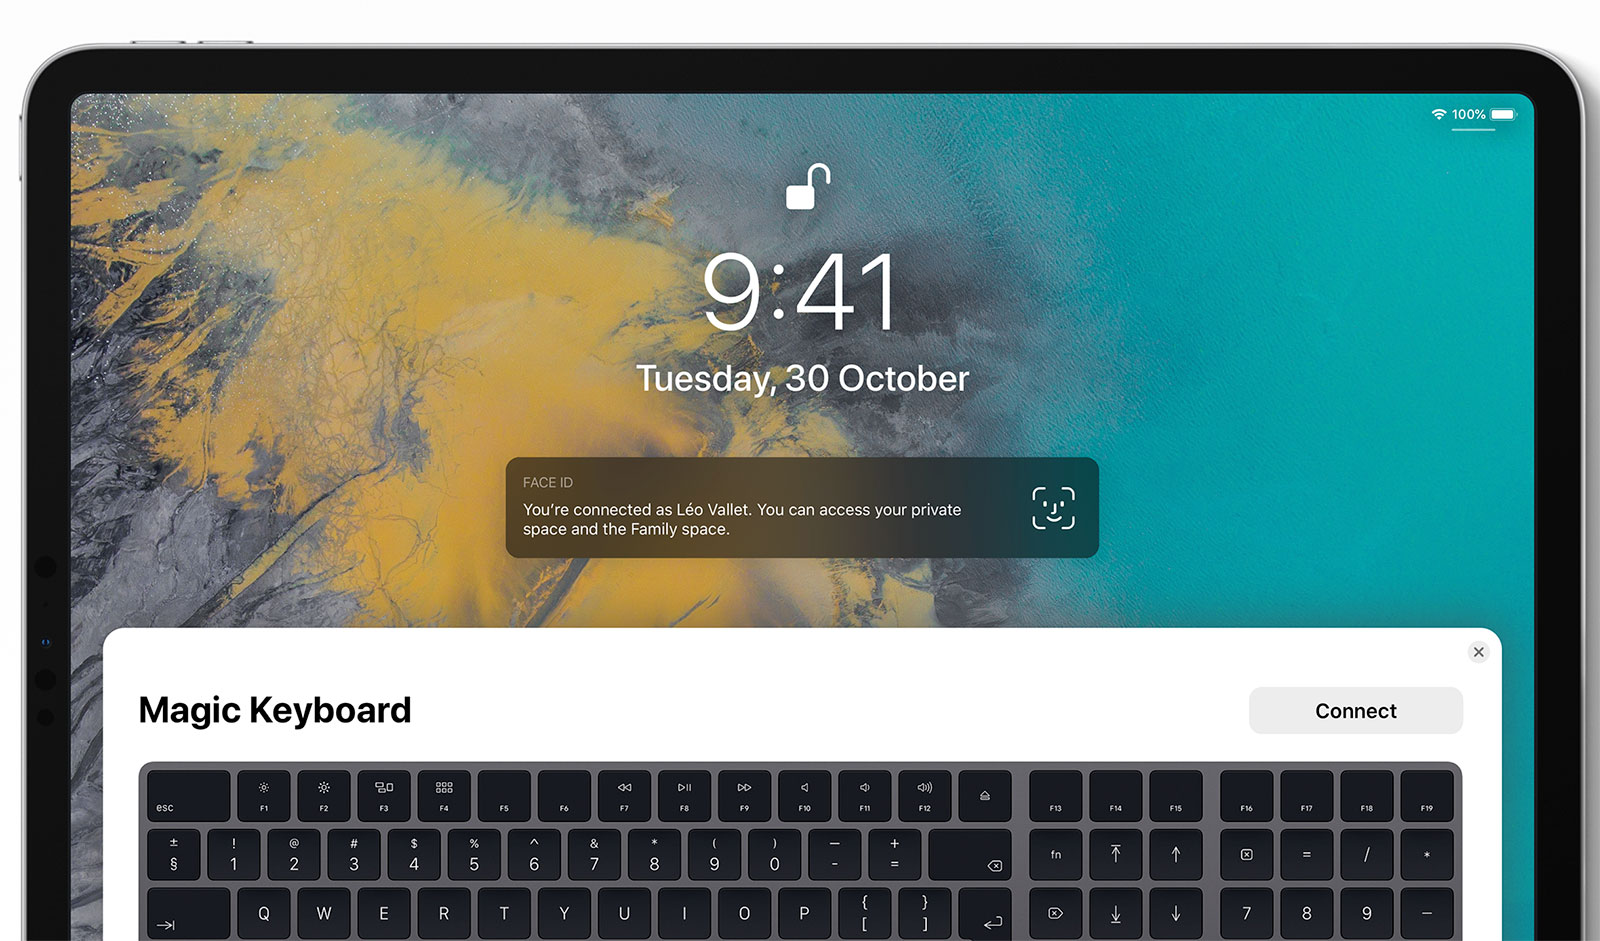 Magic Keyboard emparejado con un iPad en un concepto de diseño de iOS 13